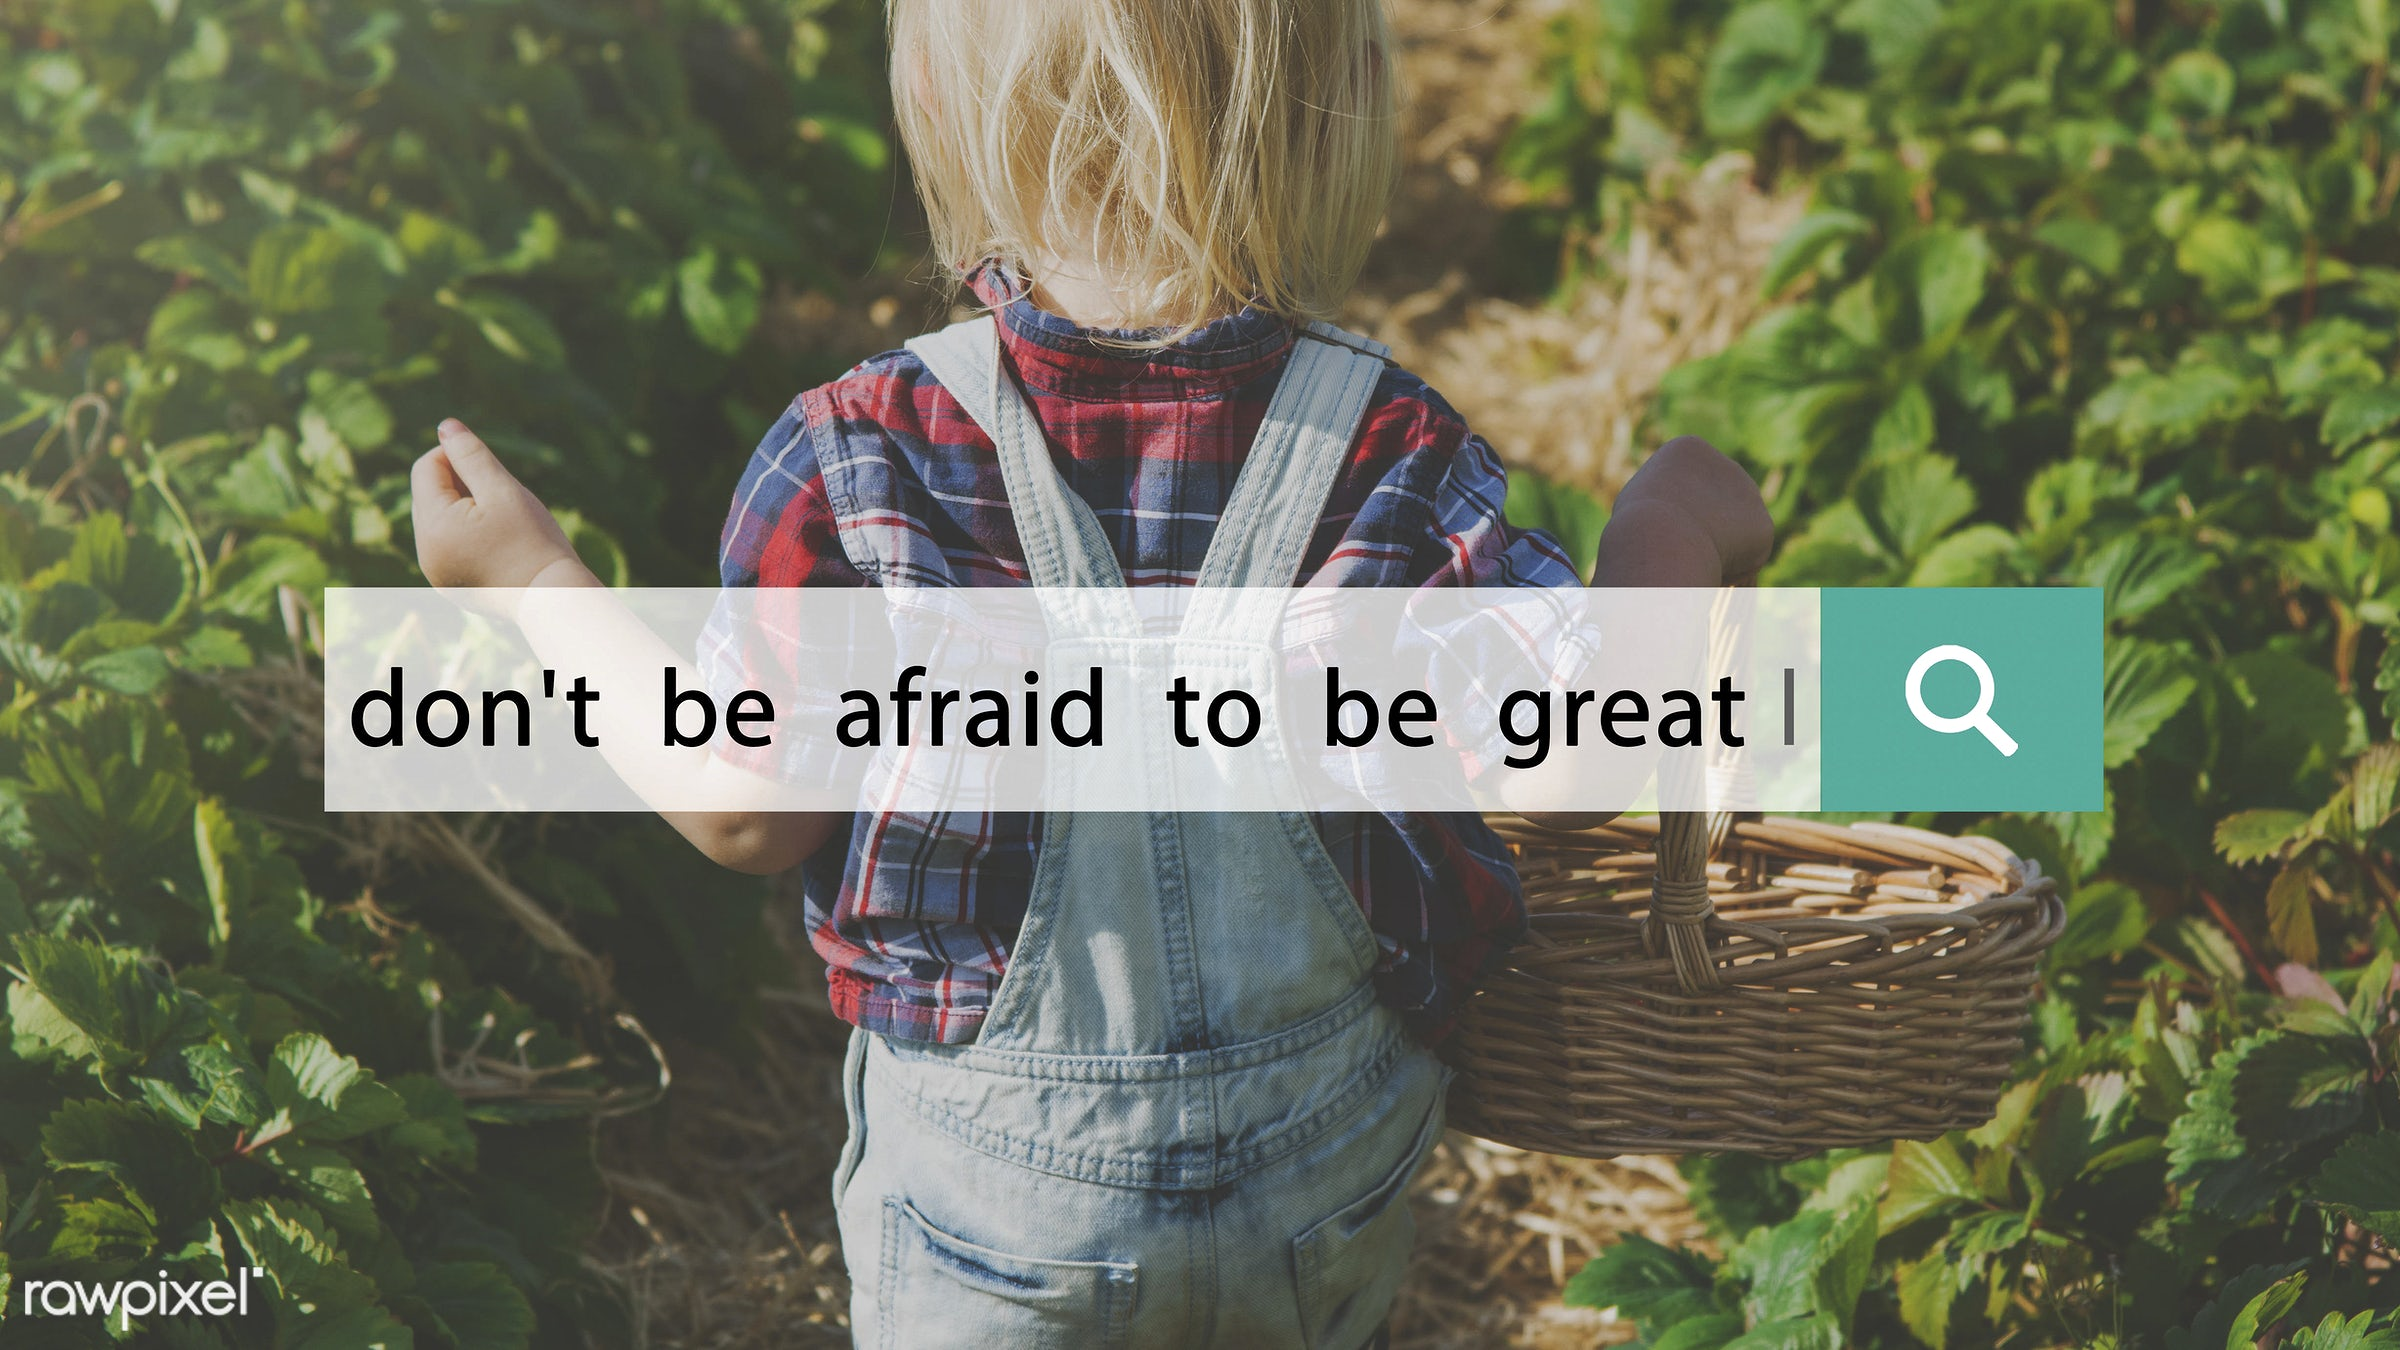 freedom, action, attitude, basket, blonde, boy, caucasian, change, dare, don't be afraid to be great, dungarees, farm, fruit...